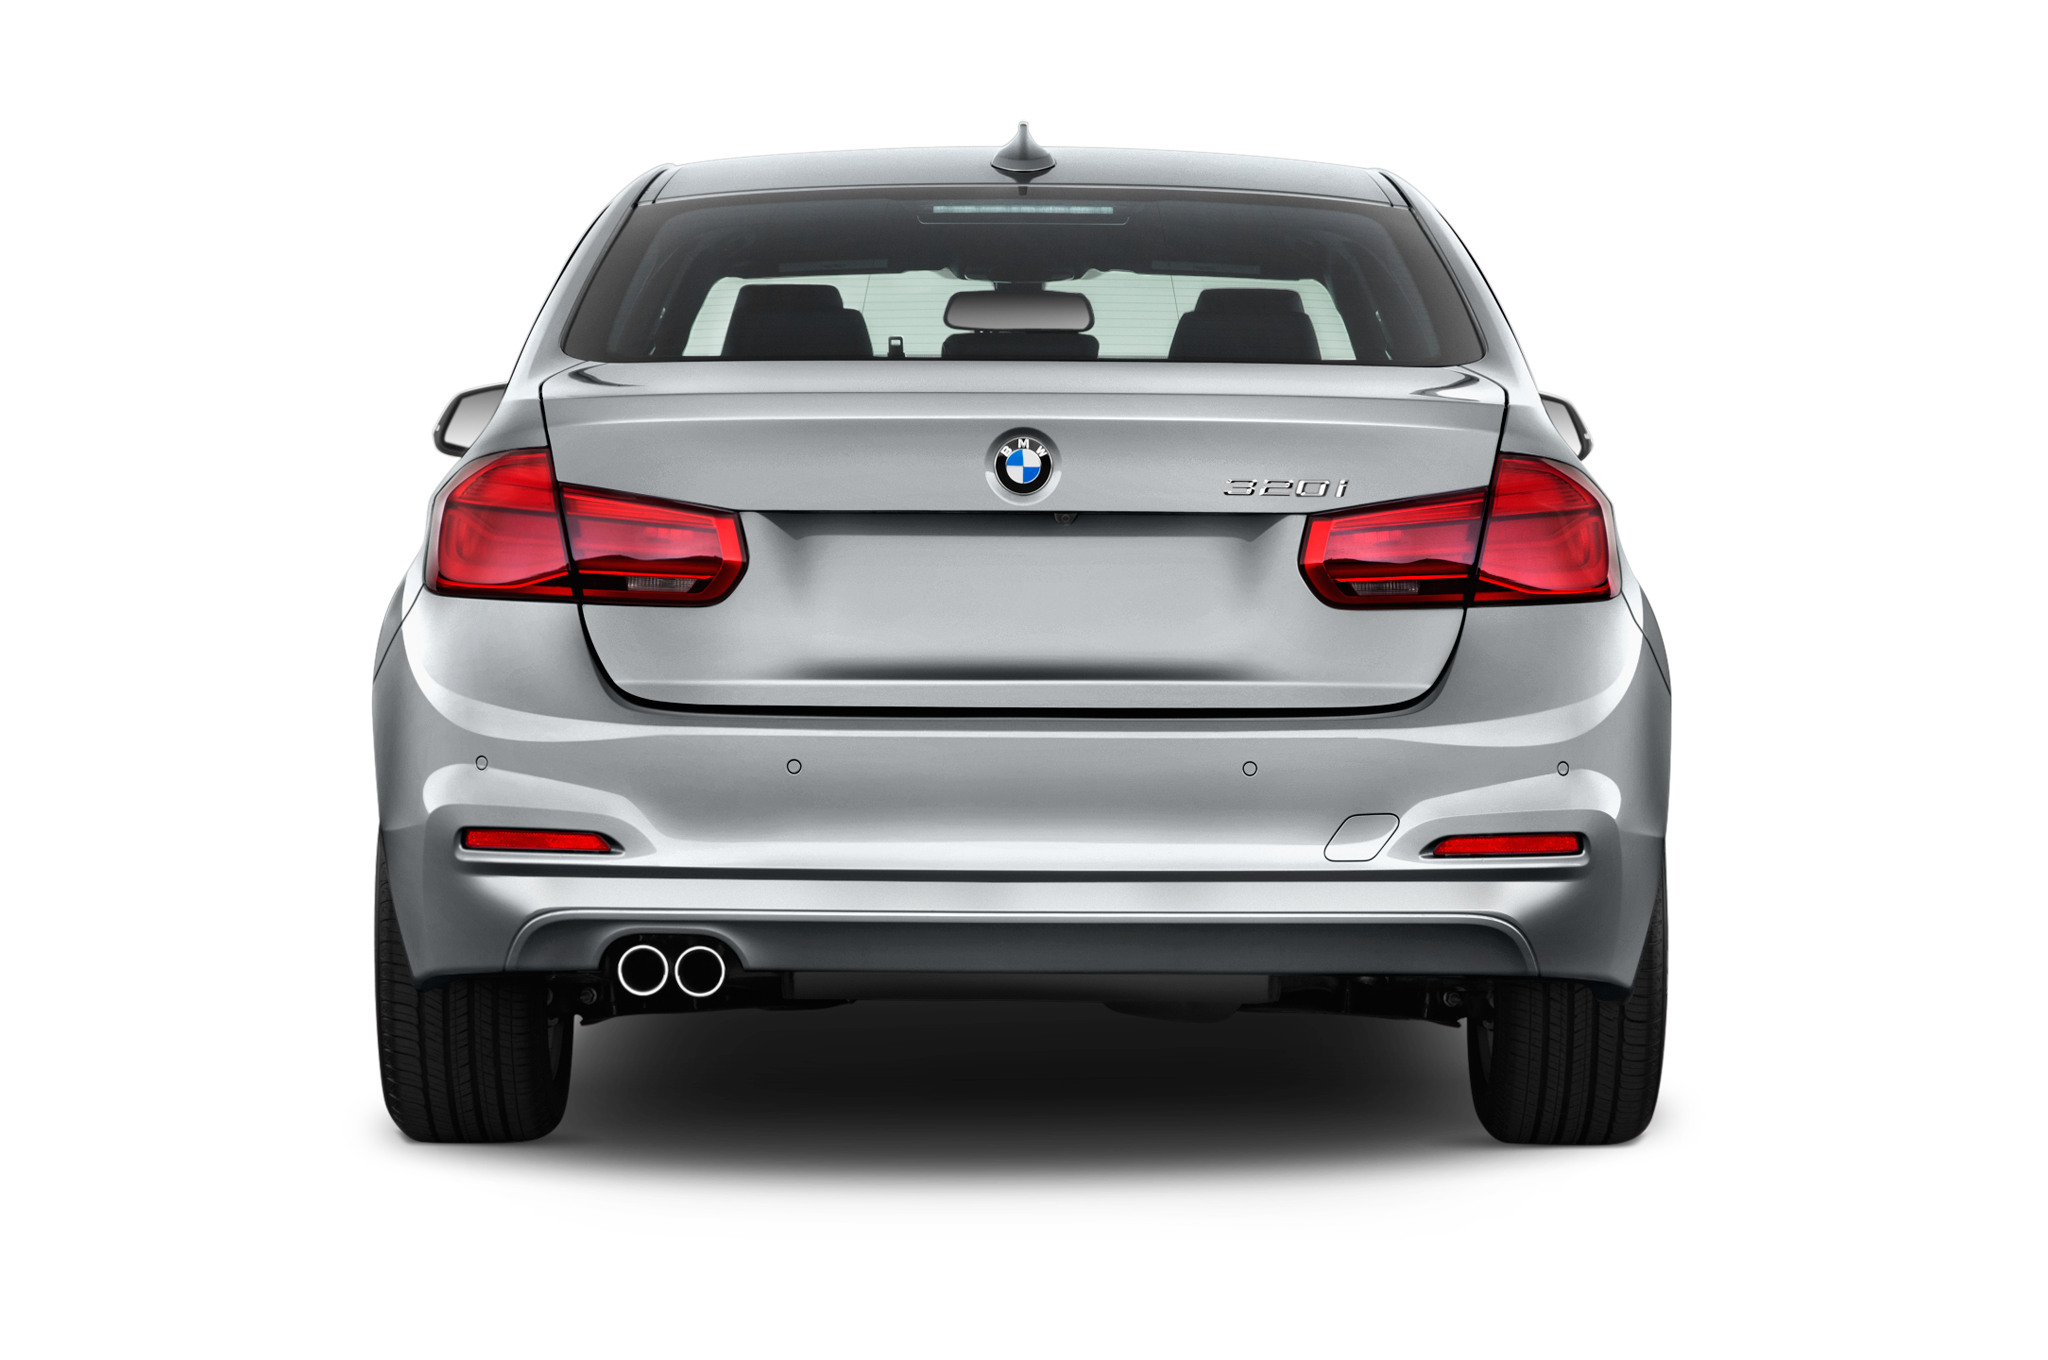 2018 bmw 320i emporium auto lease for Motor trend phone number